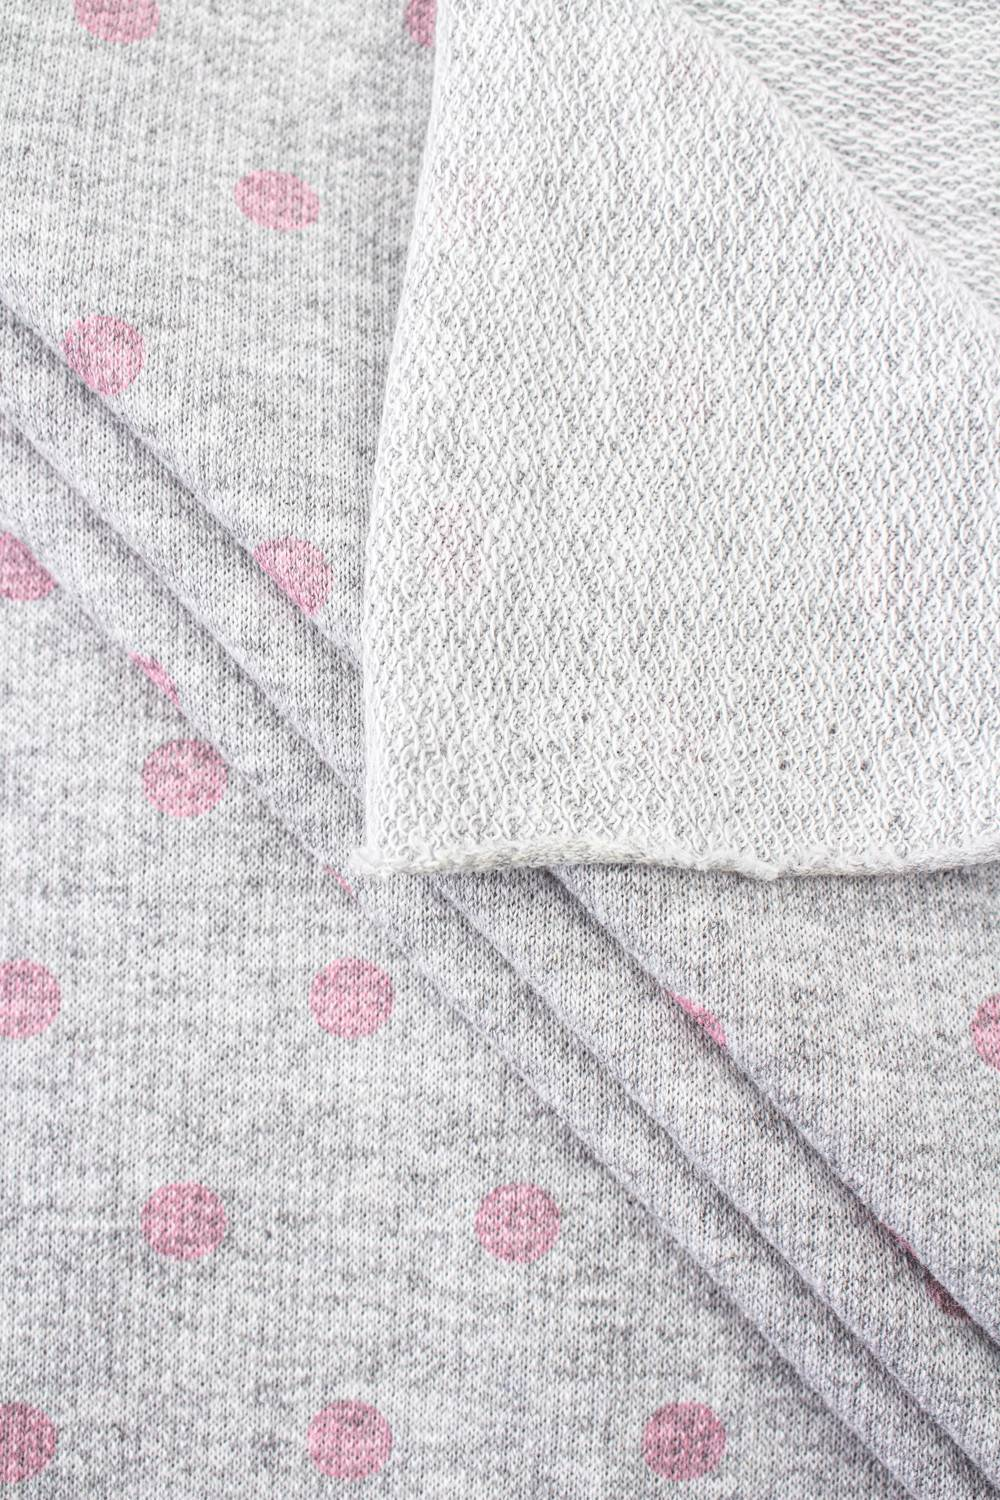 Knit - French Terry Sweatshirt - Grey Melange With Pink Dots - 180 cm - 150 g/m2